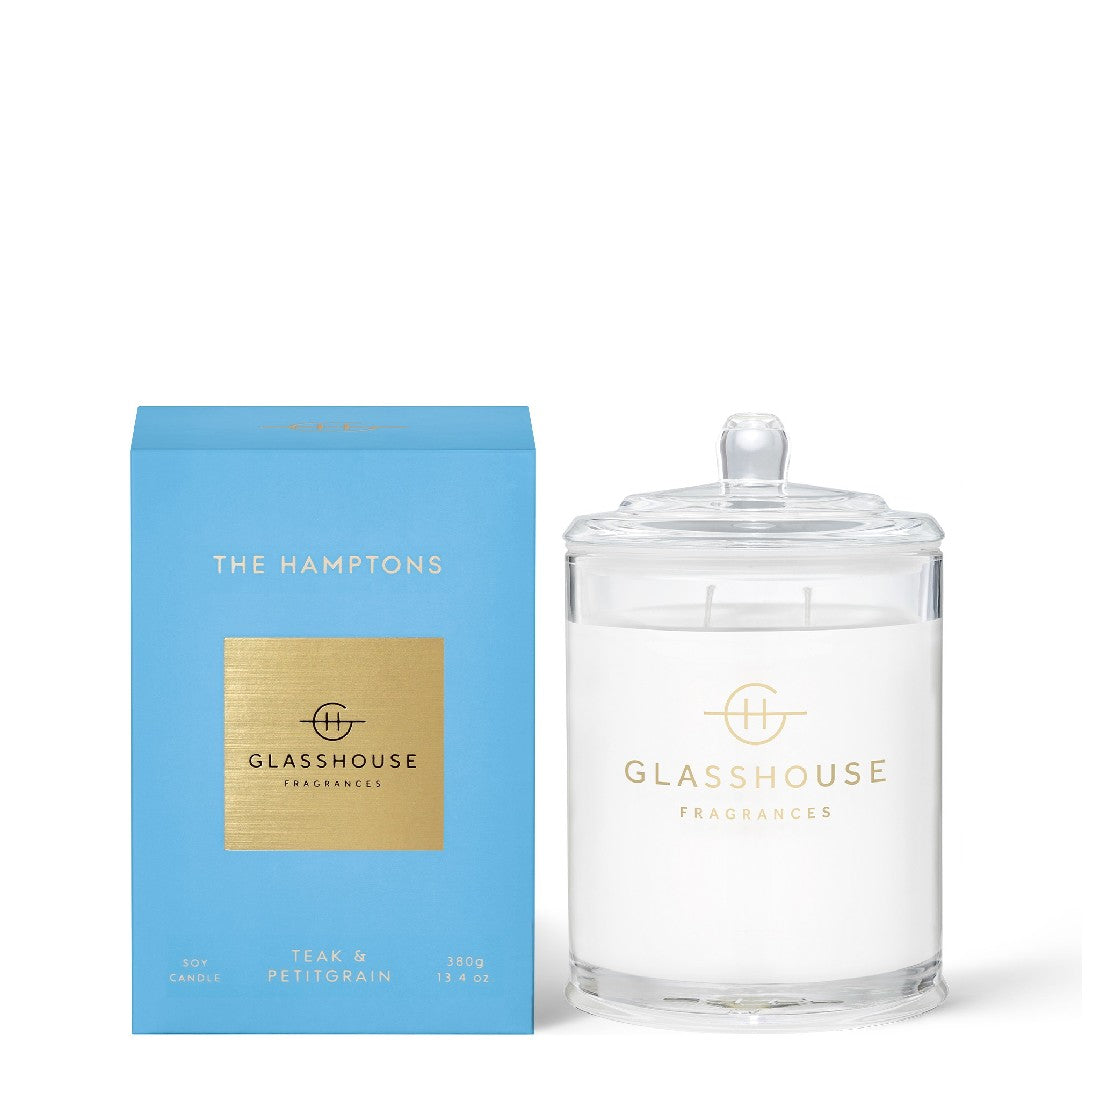 GLASSHOUSE TEAK & PETITGRAIN - THE HAMPTONS 380G SOY CANDLE